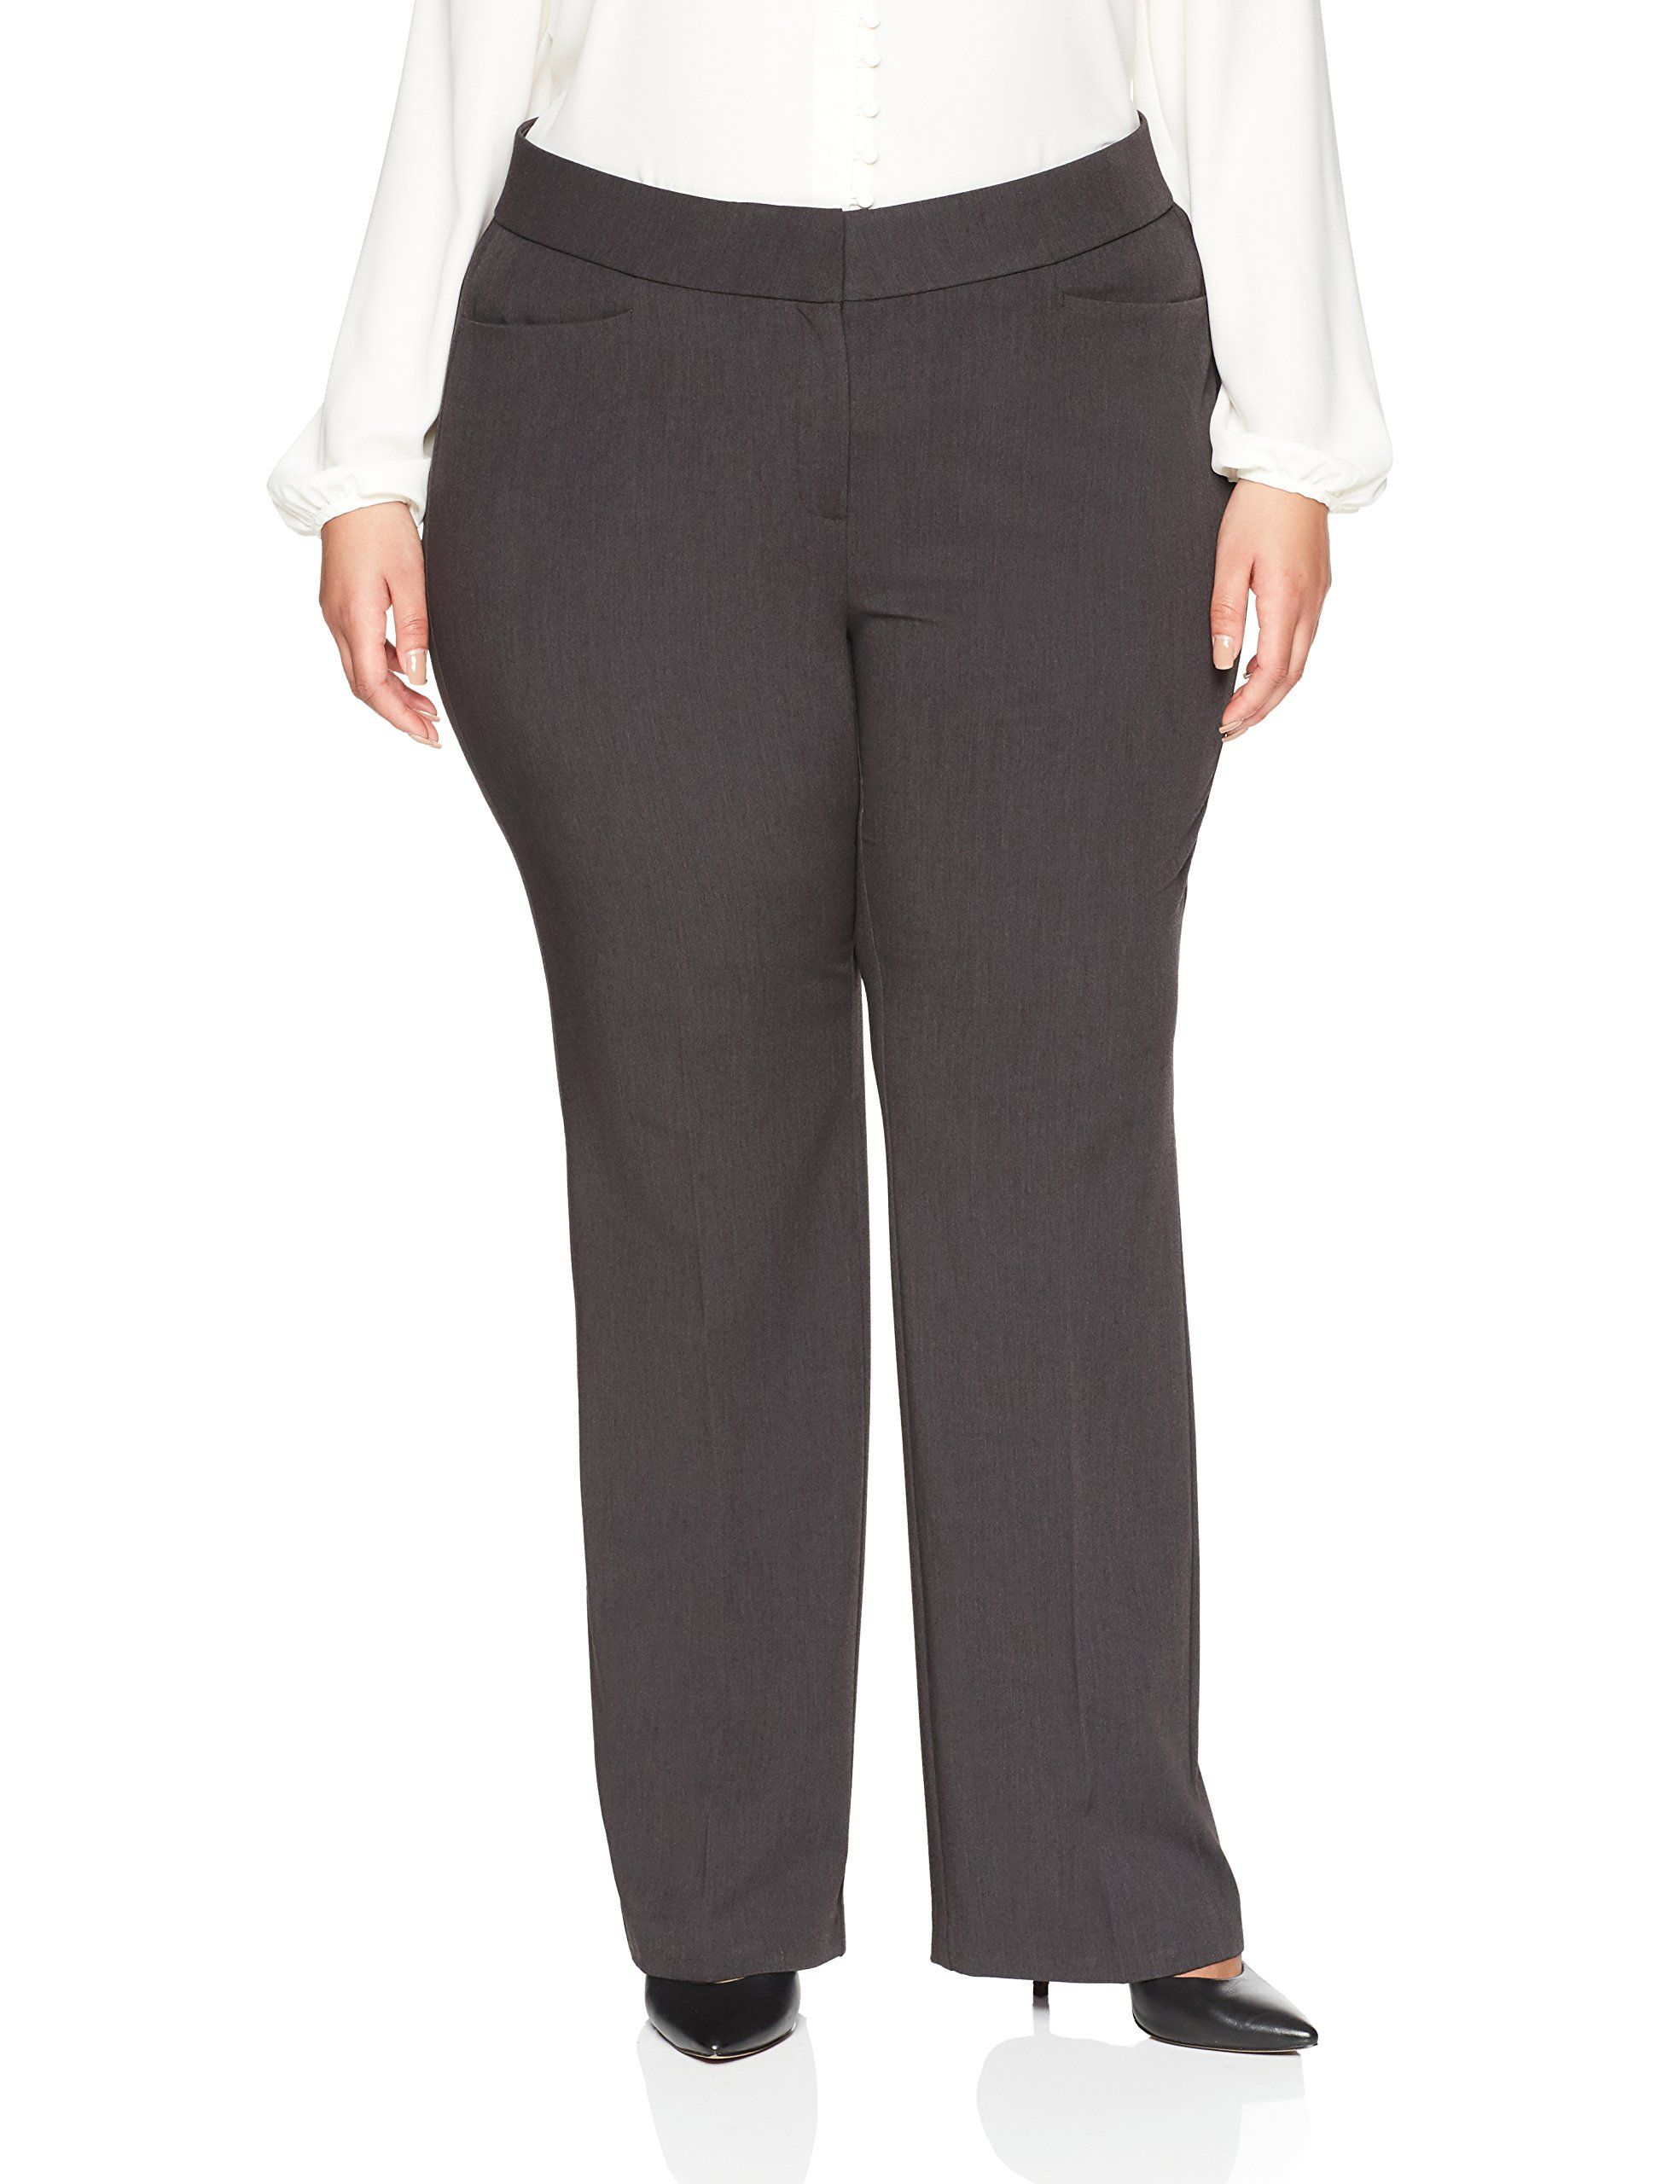 Lark And Ro Womens Plus Size Bootcut Trouser Pant Curvy Fit Charcoal 18w See This Terrific Product This Plus Size Business Attire Curvy Fit Trouser Pants [ 2560 x 1969 Pixel ]